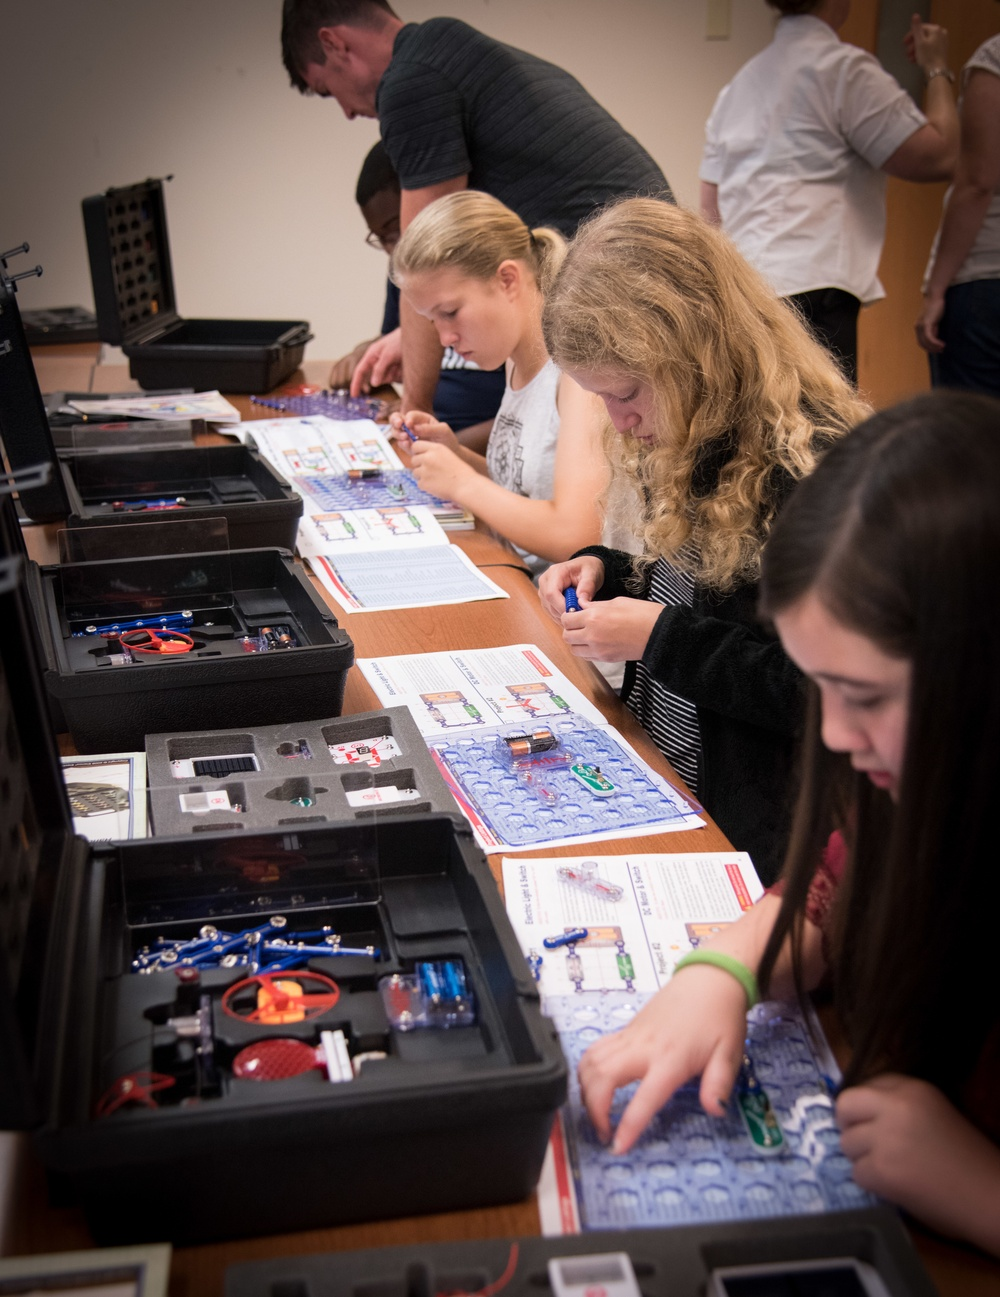 SPAWAR's Cybersecurity summer camp expands student enthusiasm in STEM careers.